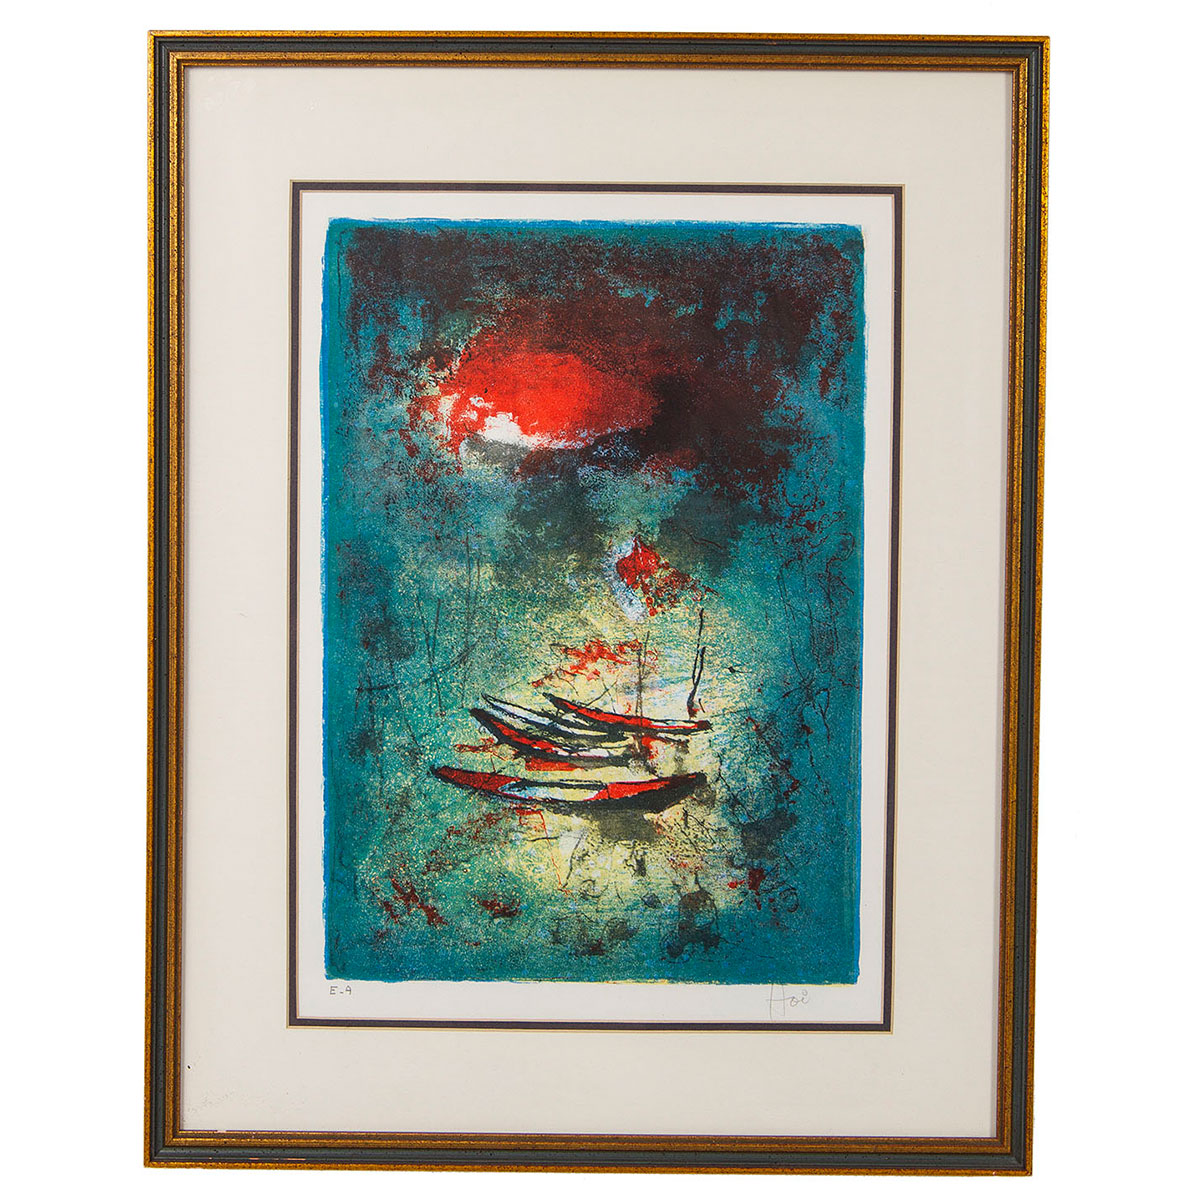 Vintage Lithograph of Fishing Boats by Hoi